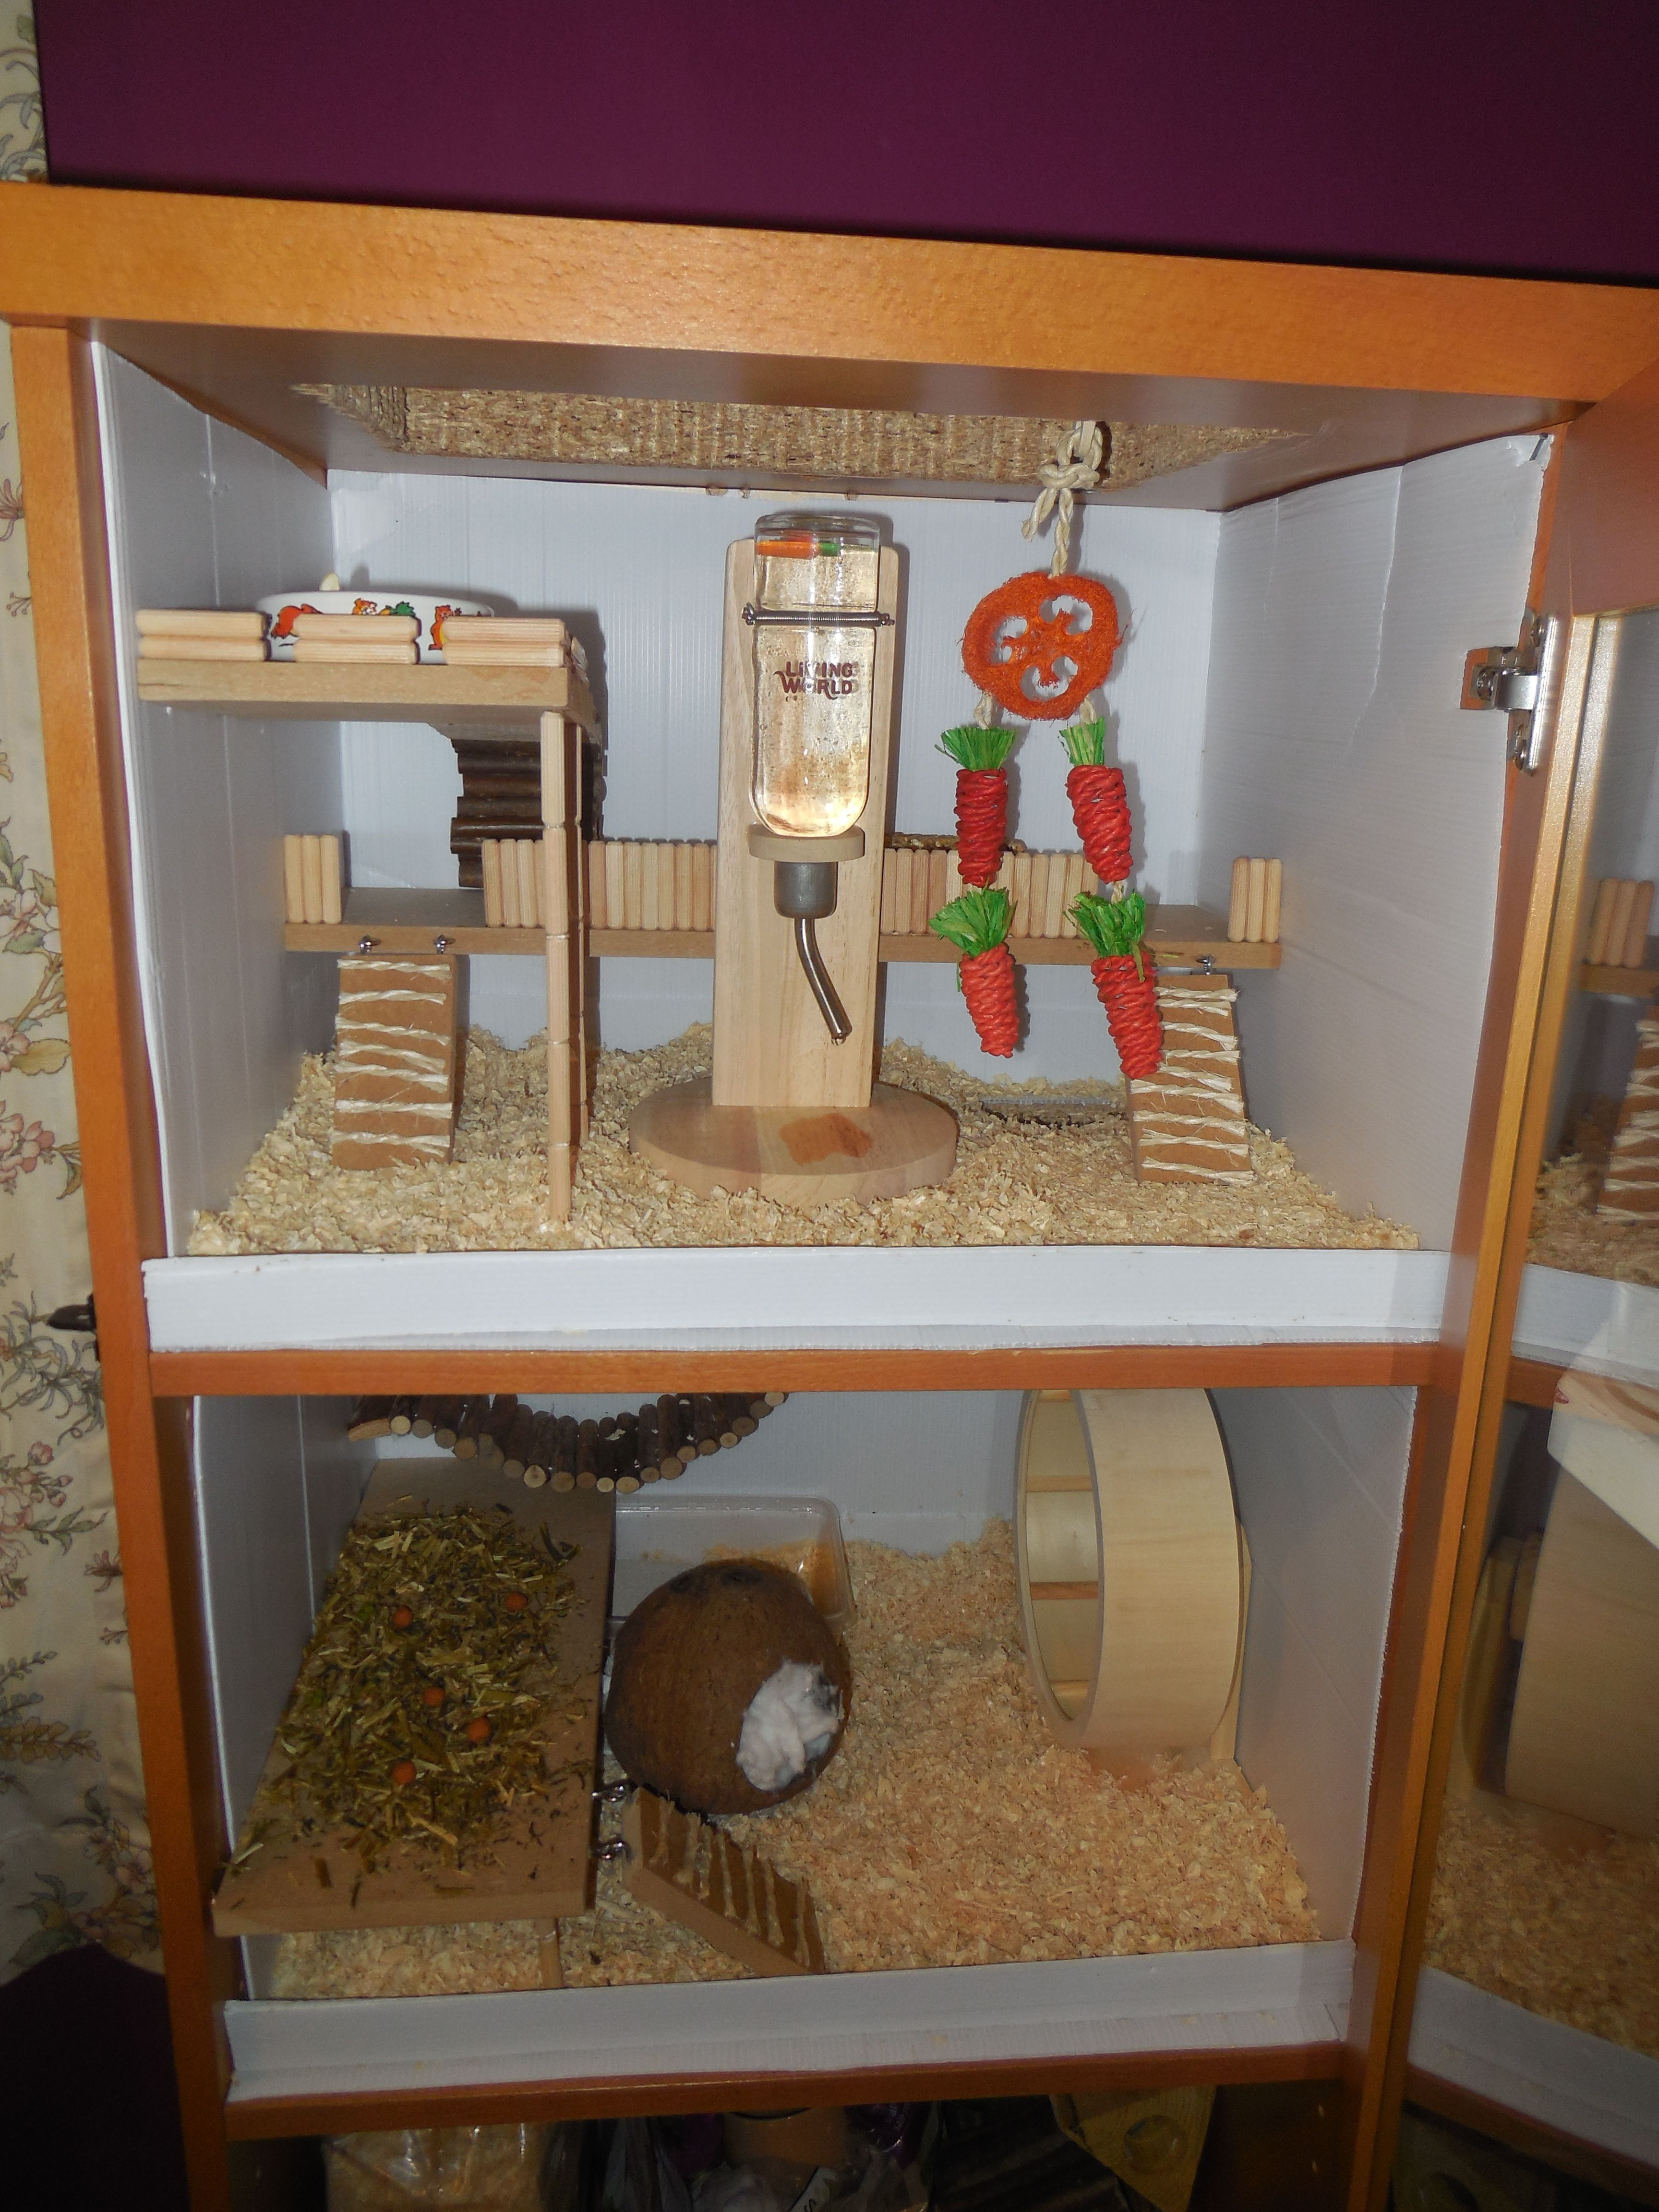 Diy Hamster Cage Made From An Old Cabinet Amazing Ideas